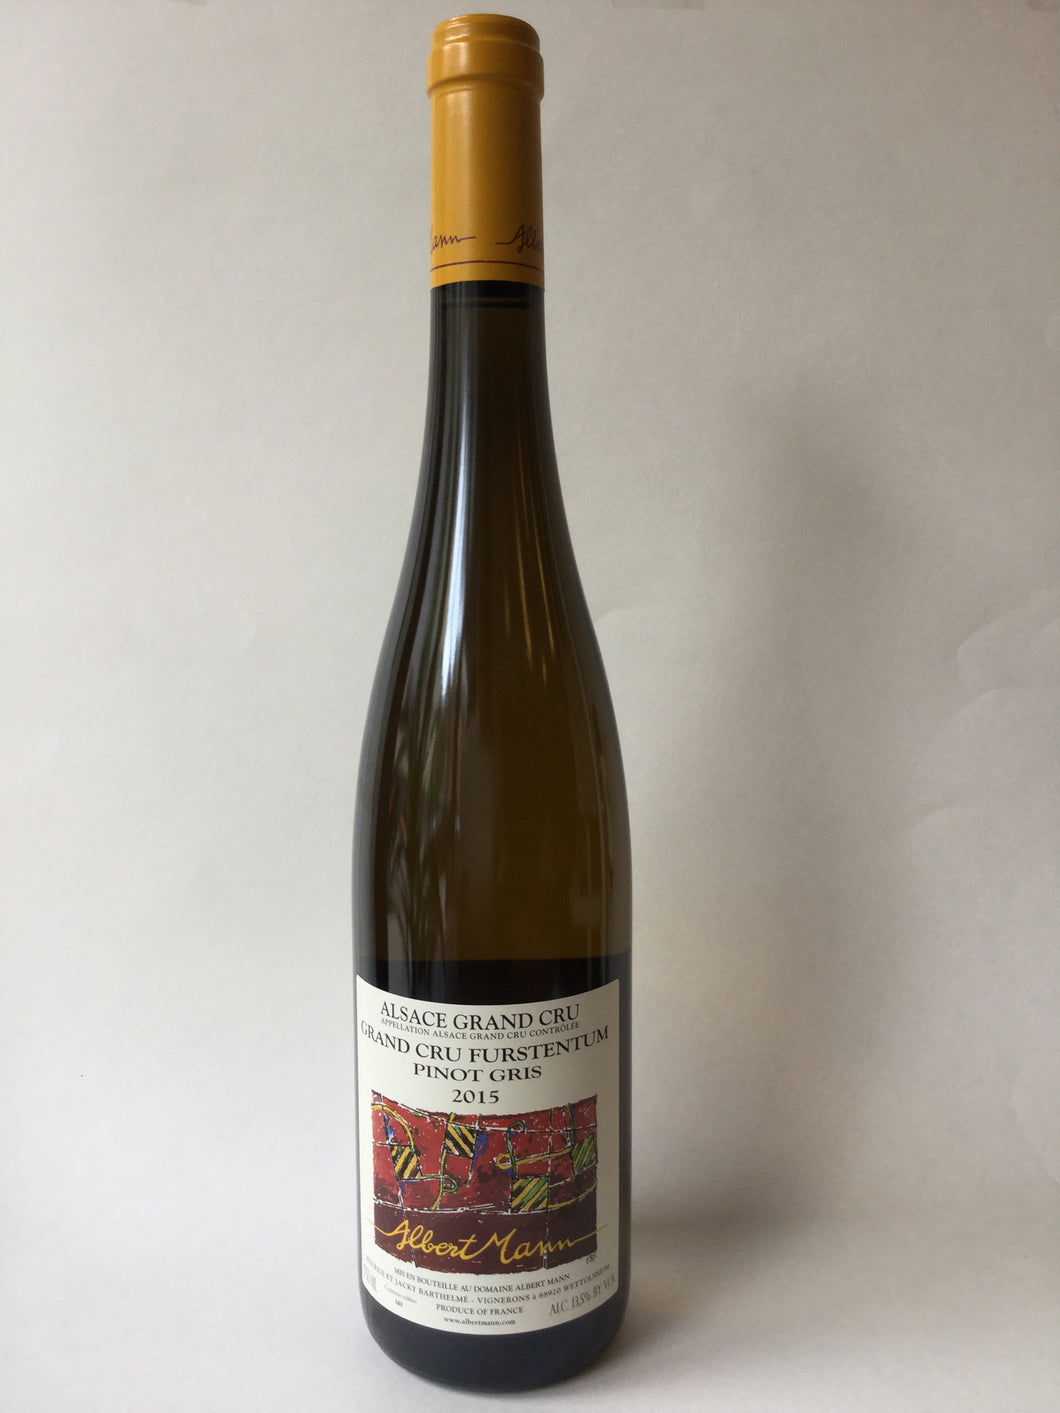 Albert Mann Pinot Gris Grand Cru 'Furstentum' 2015,750ml - Frankly Wines